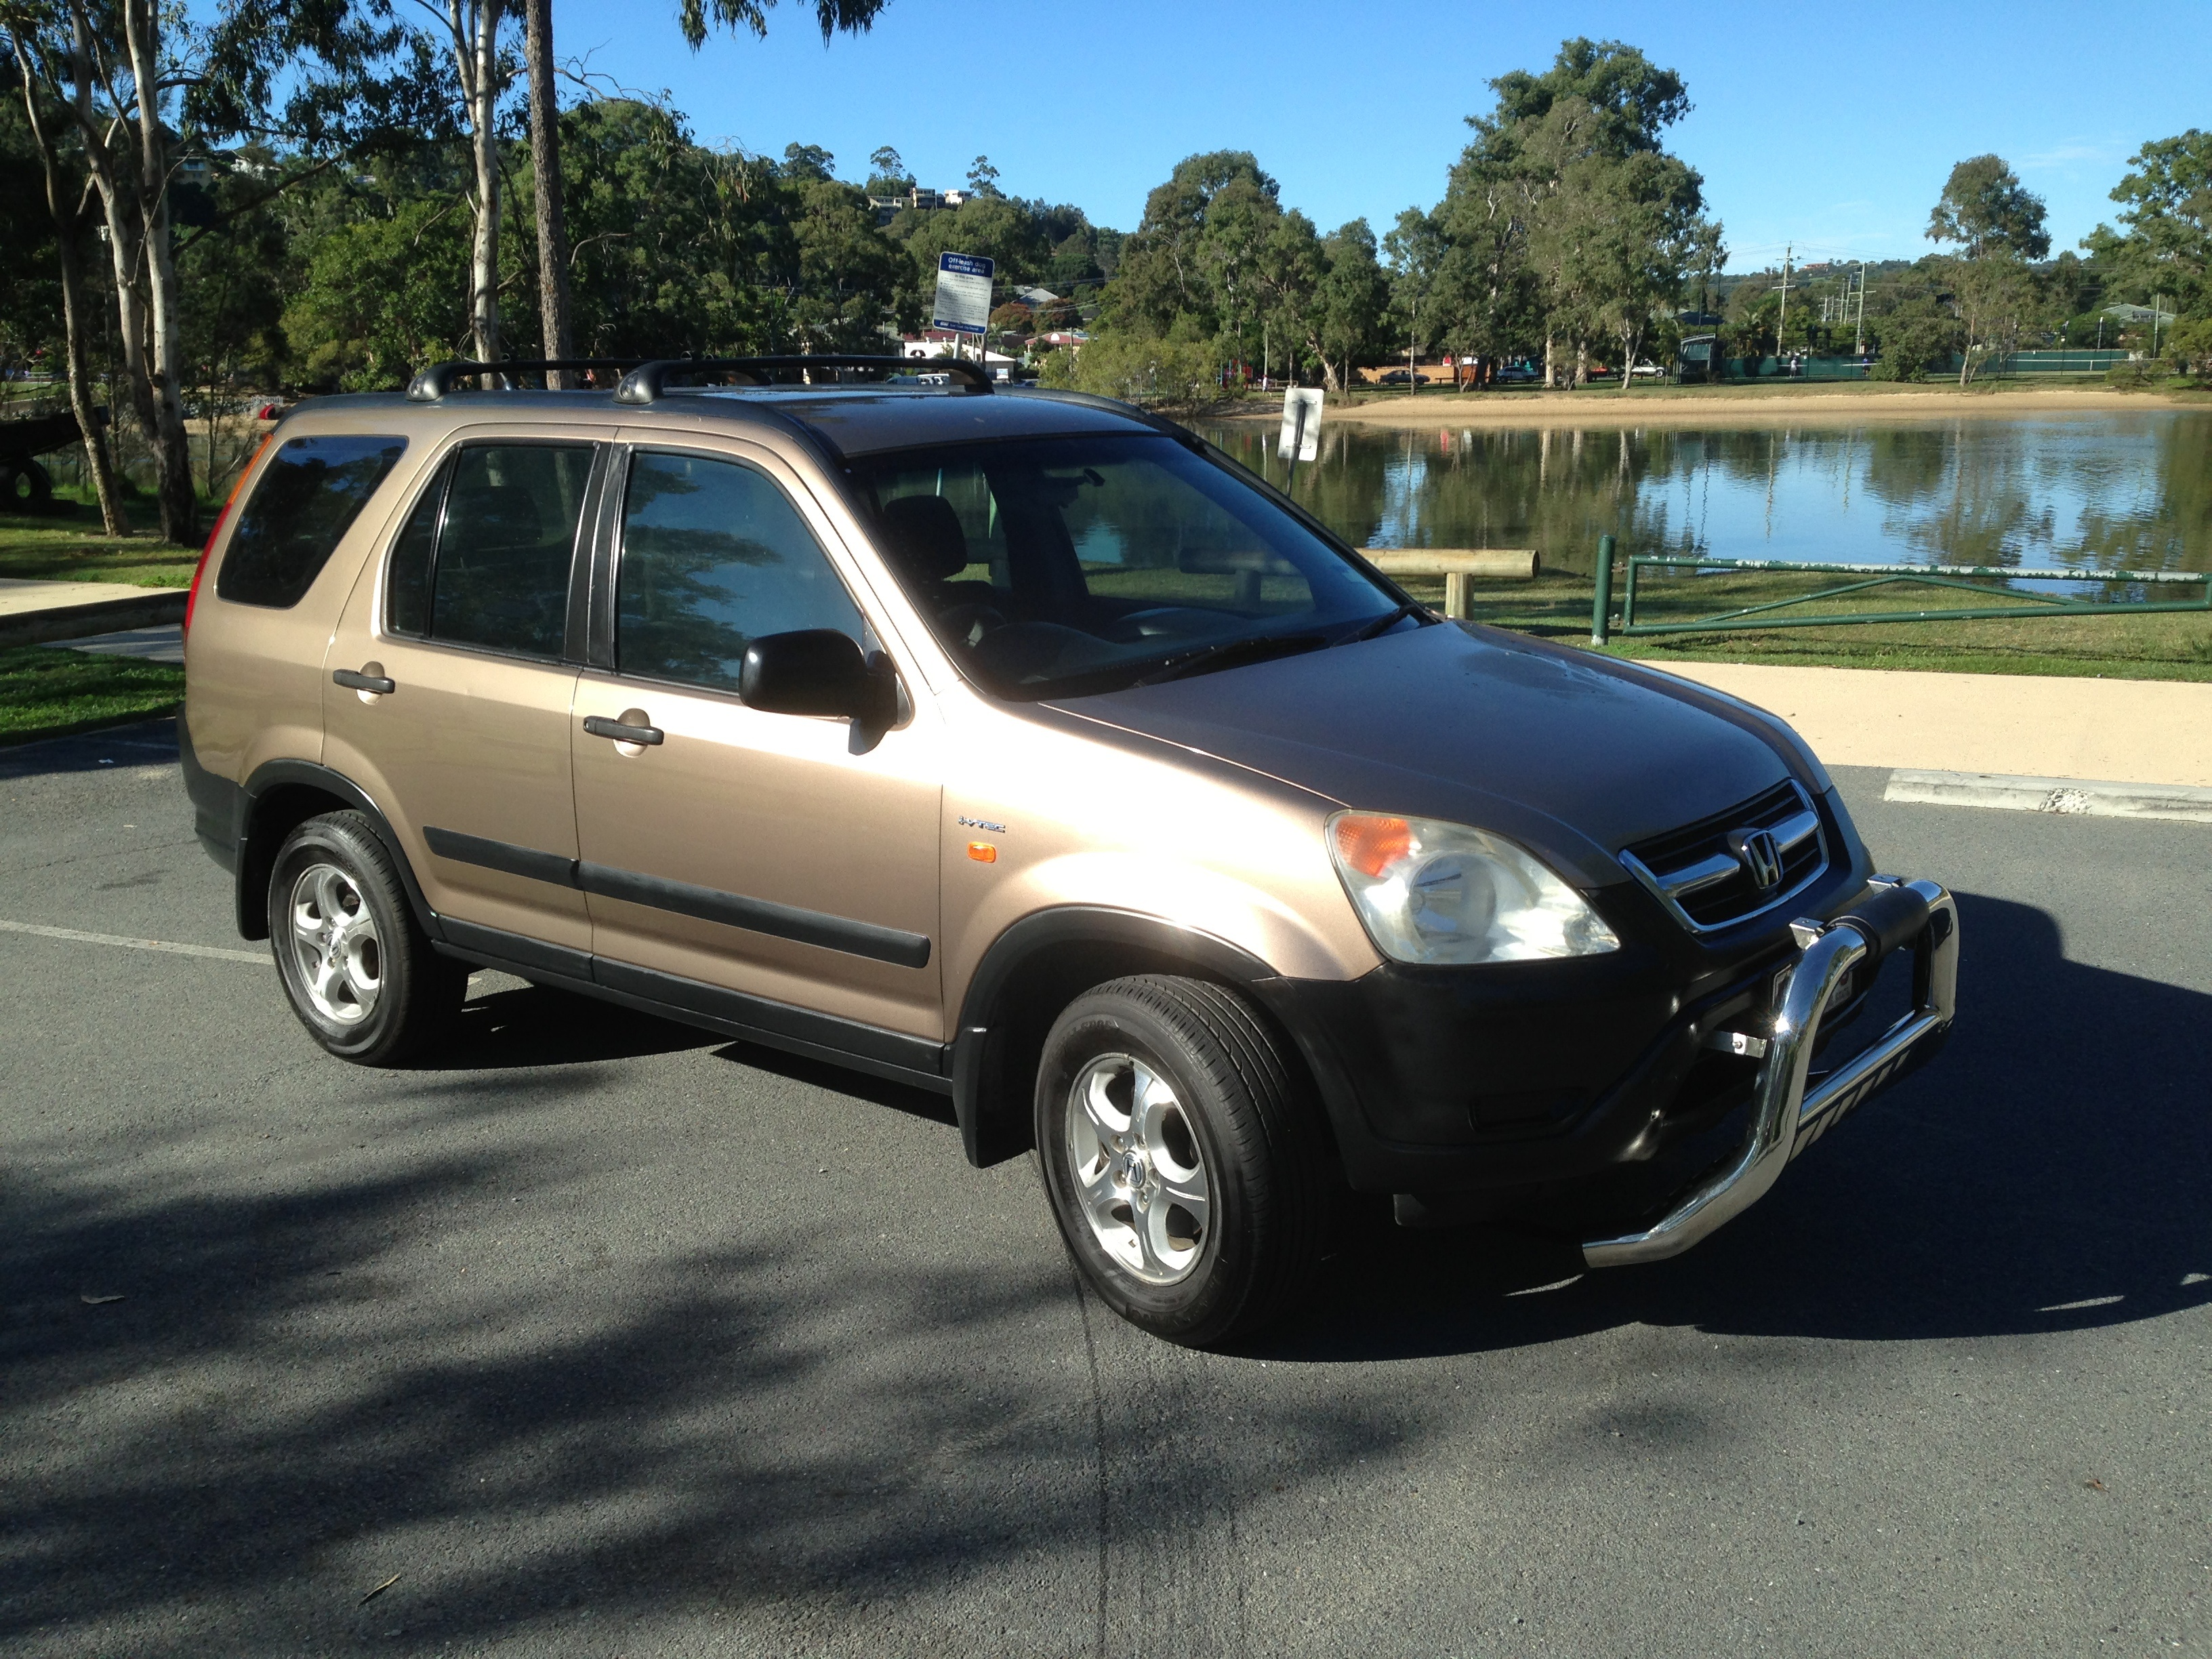 2003 honda crv 4x4 winter classic for sale or swap qld gold coast. Black Bedroom Furniture Sets. Home Design Ideas